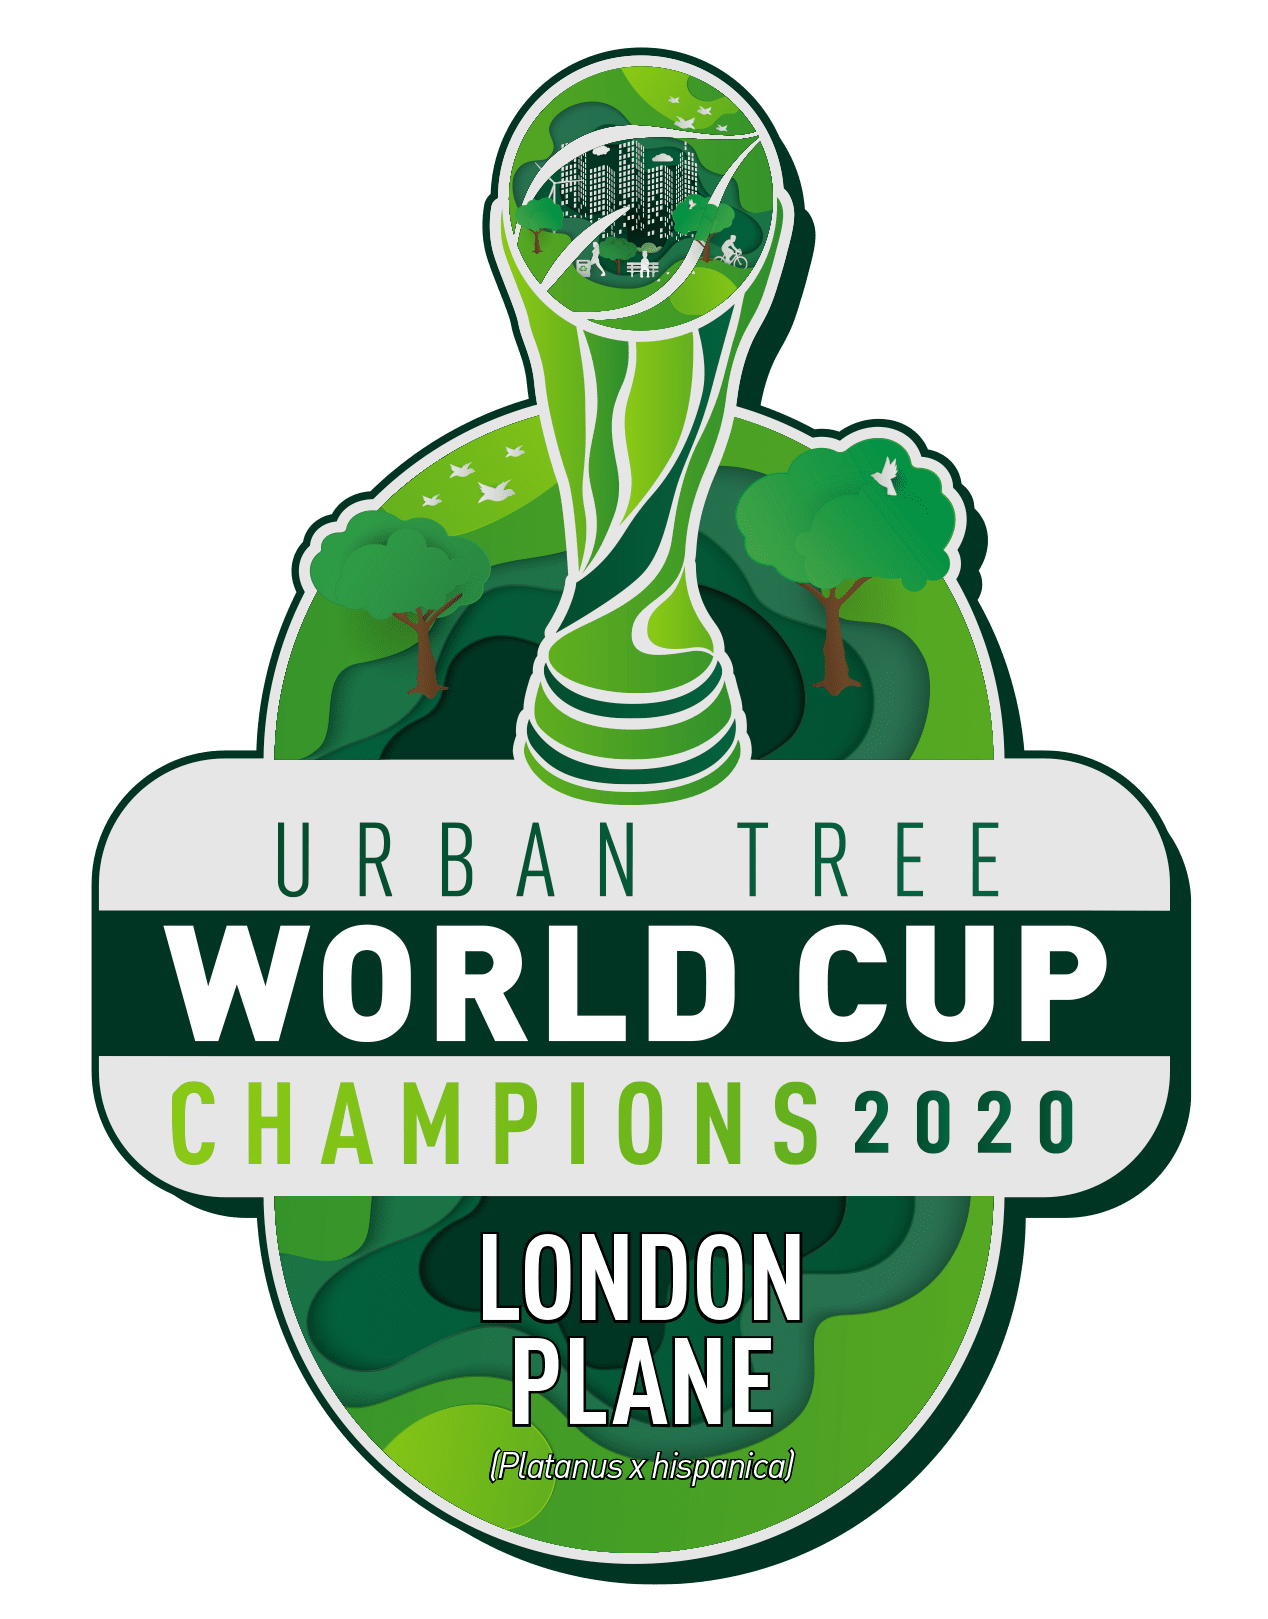 Urban Tree World Cup 2020 – Winner – London plane